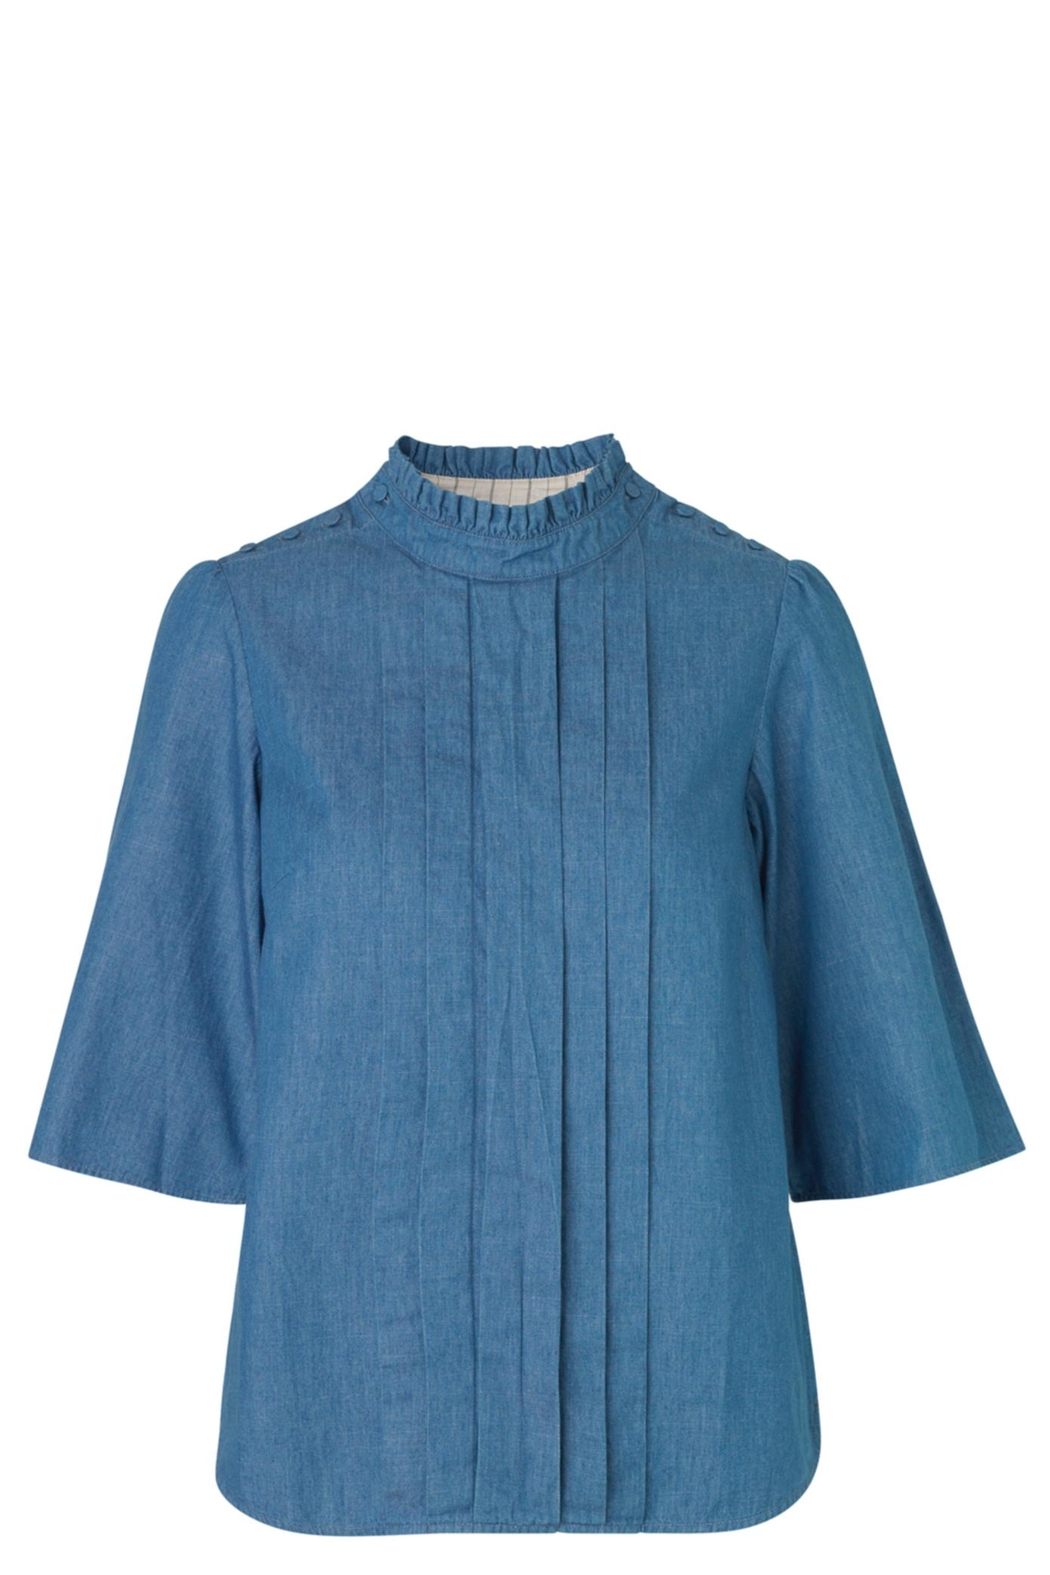 Noa Noa Denim Shirt - Front Cropped Image